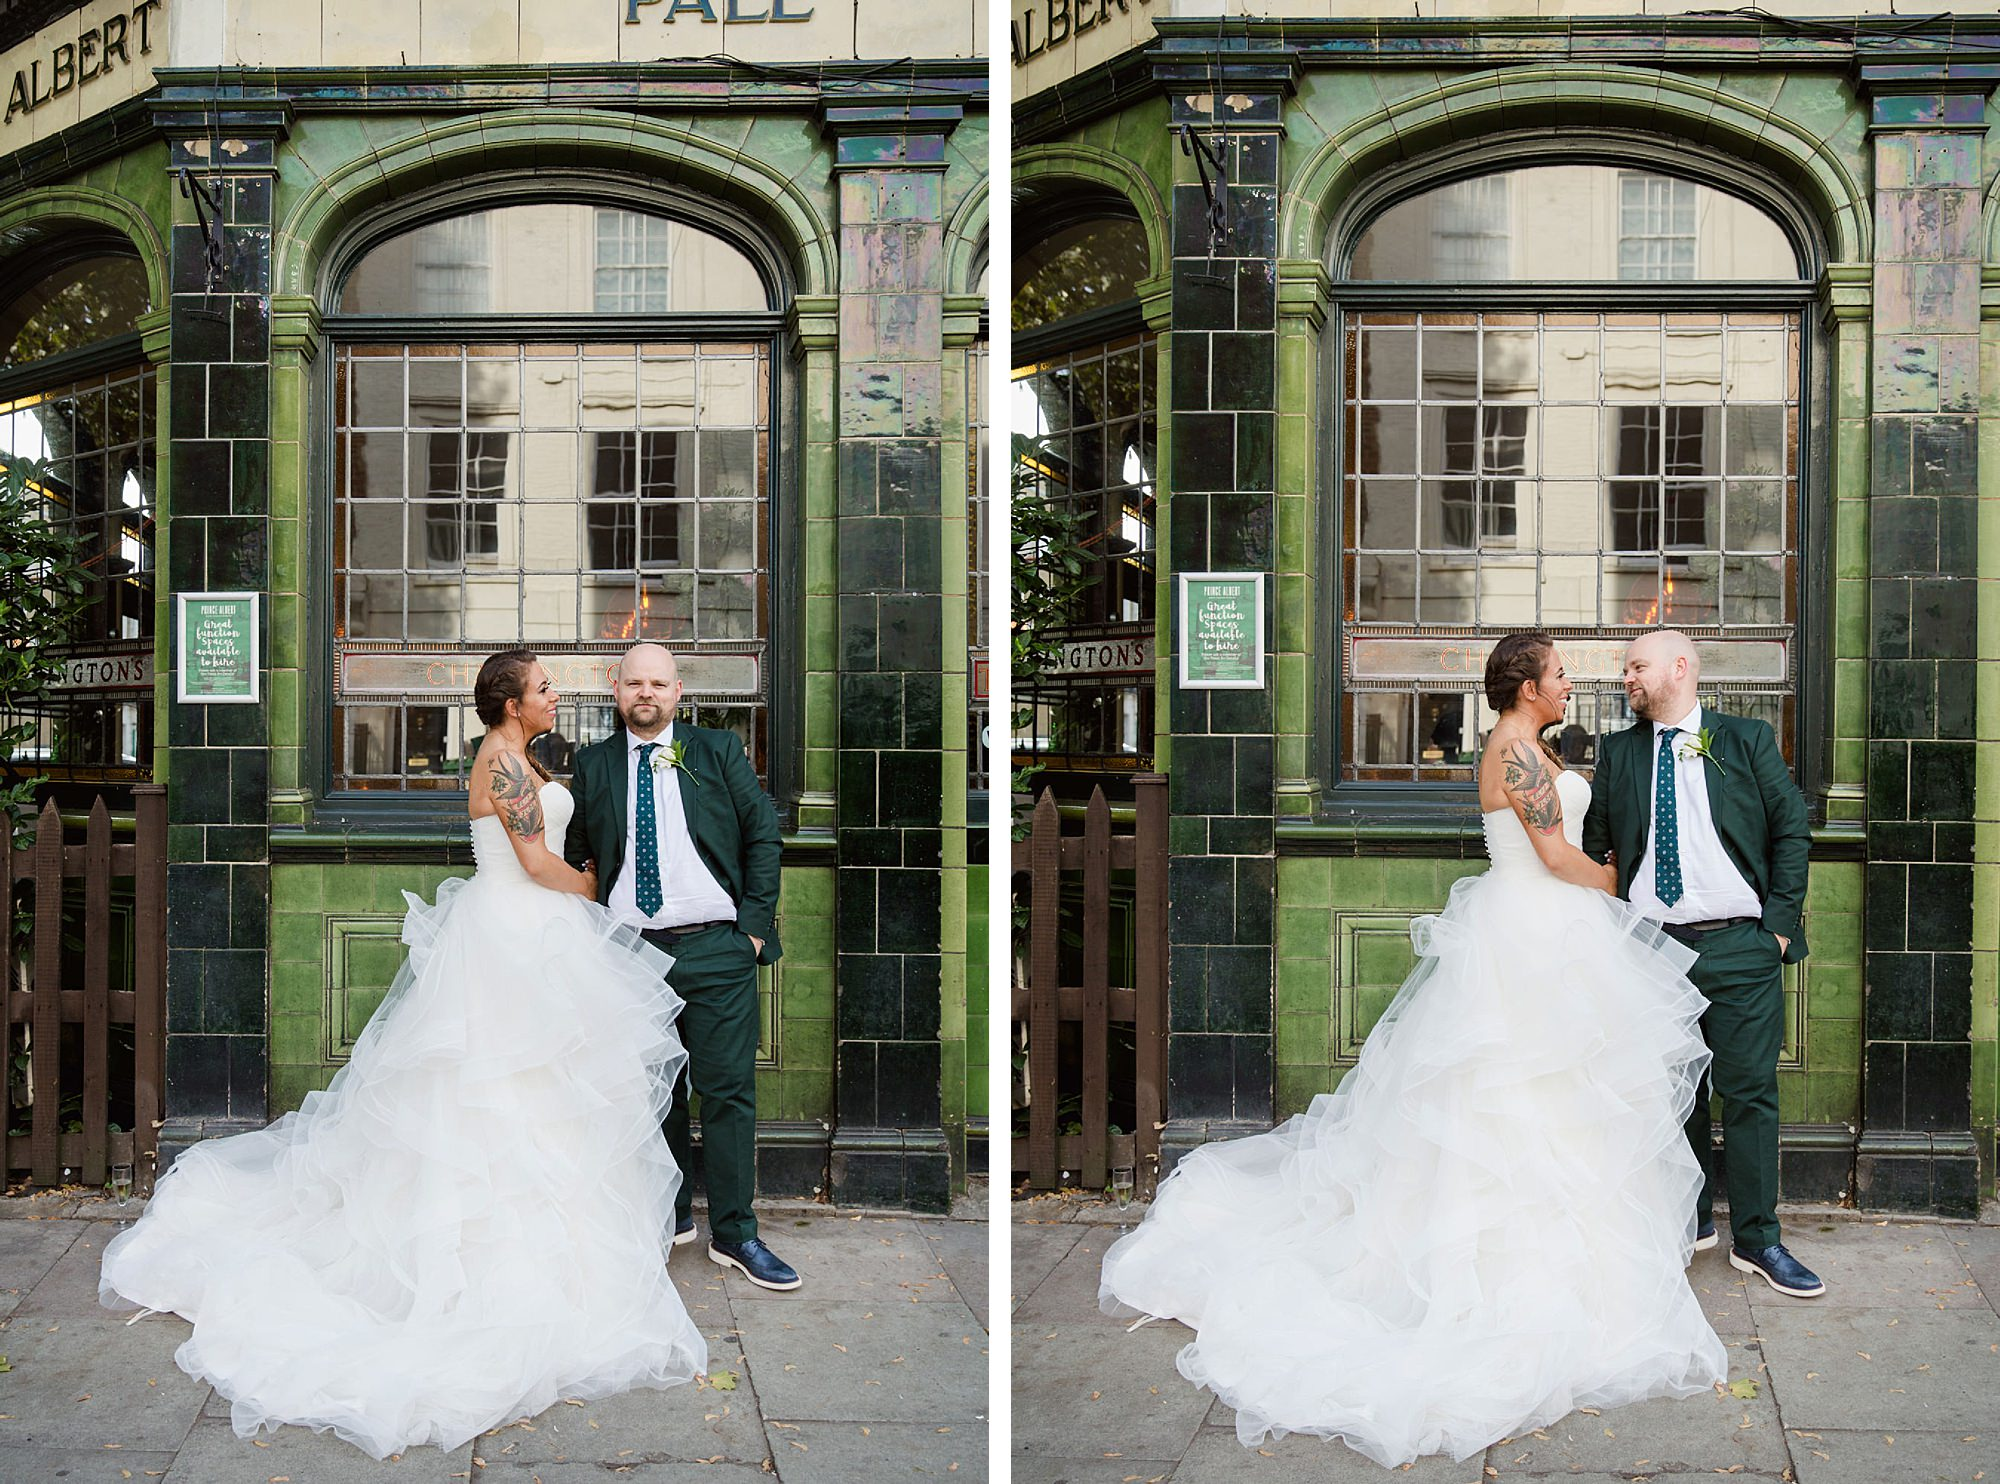 Prince albert camden wedding bride and groom stand outside pub